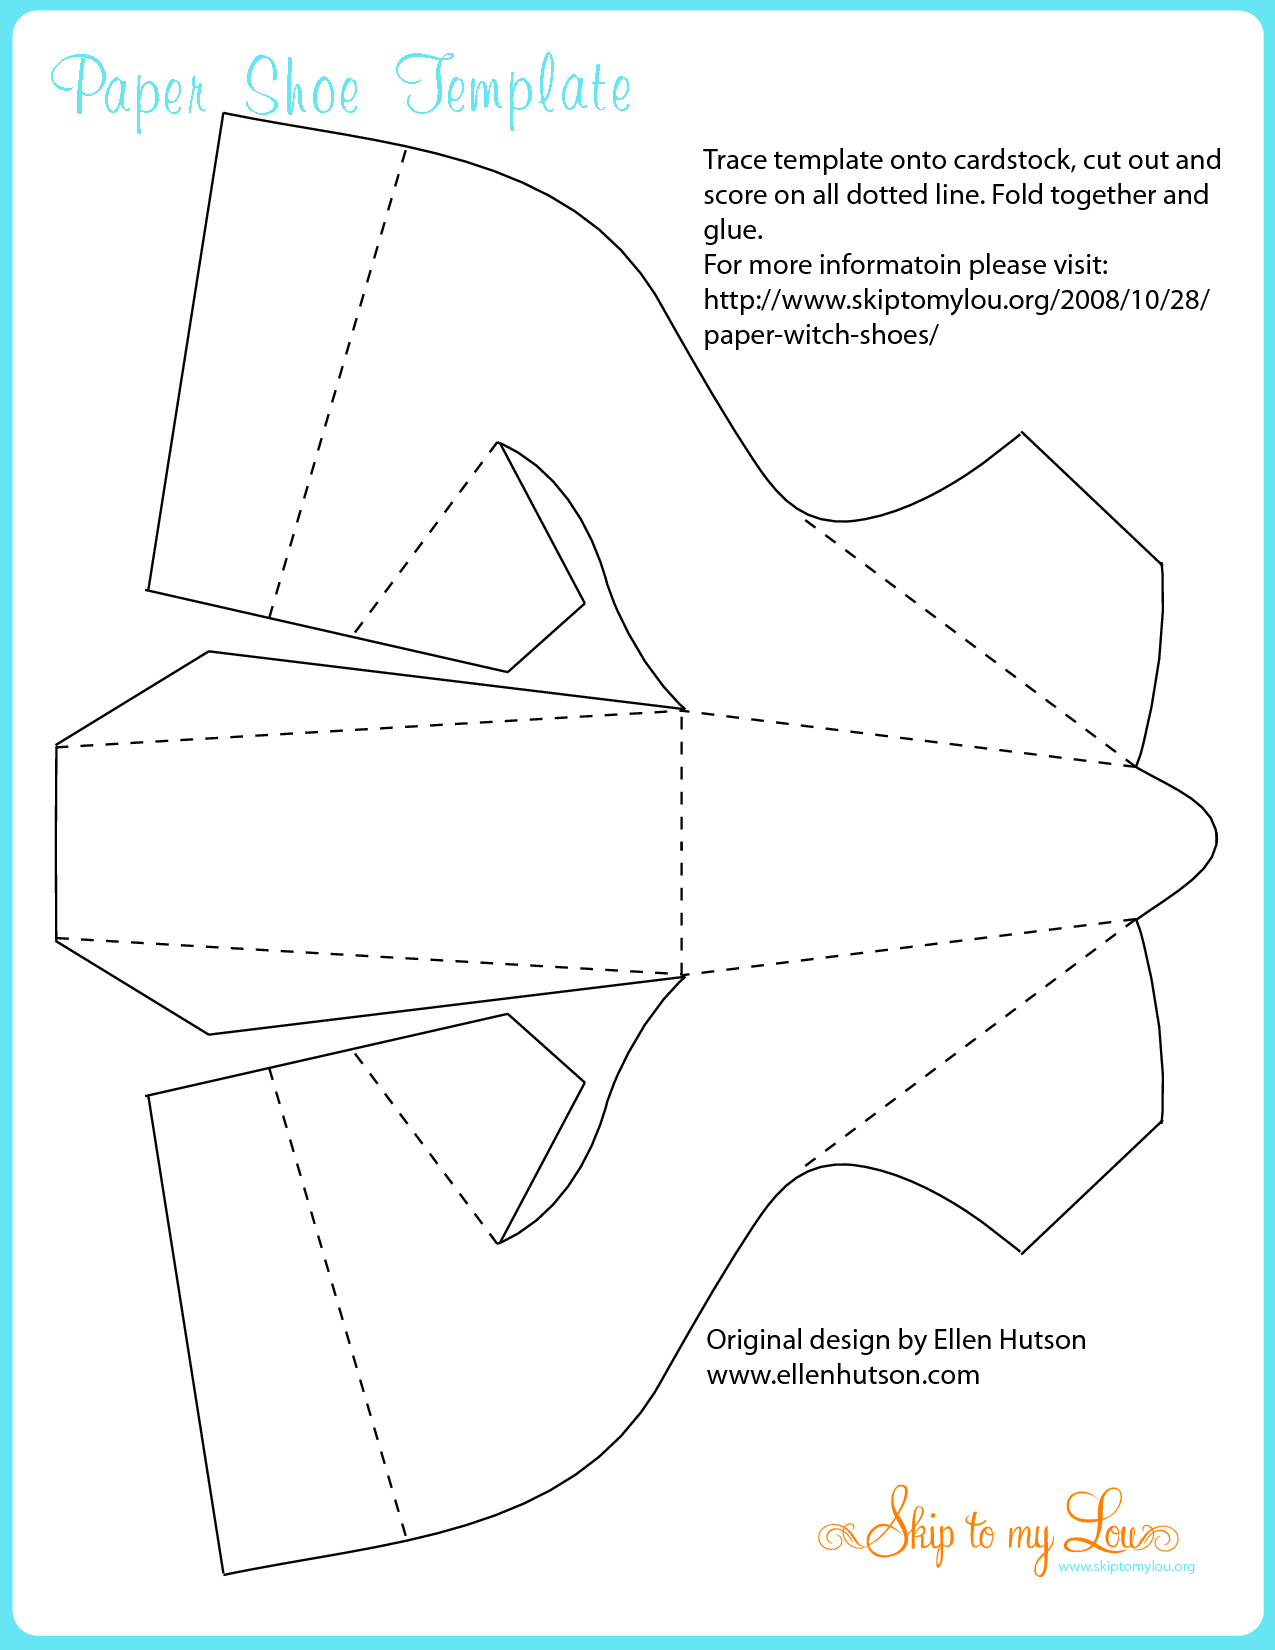 paper witch hat template - decorative witches shoes trace template onto cardstock